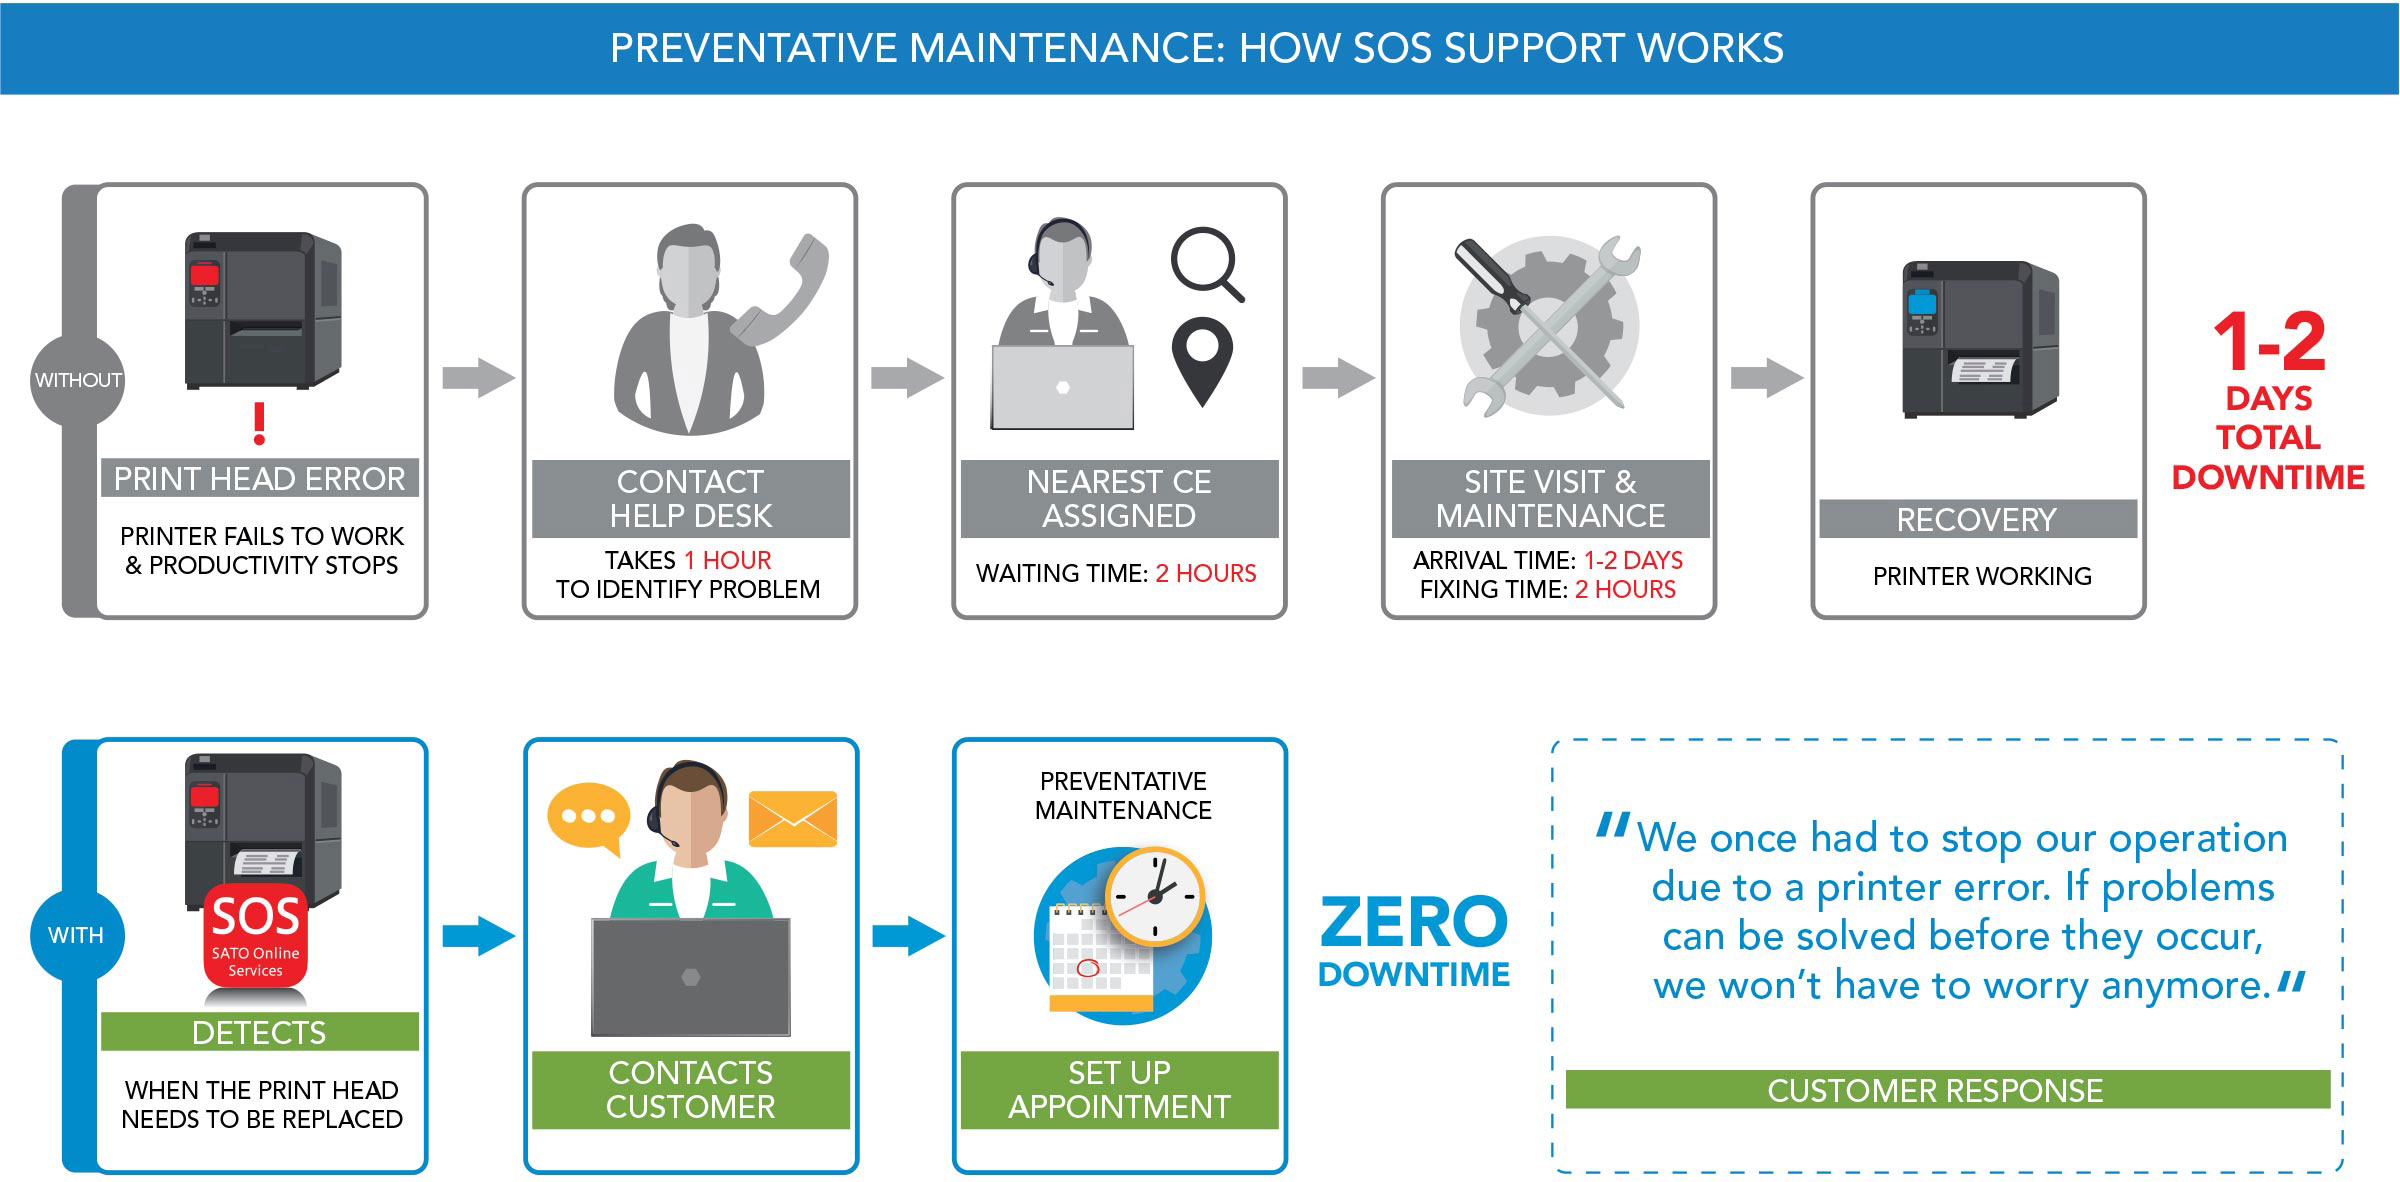 Preventative Maintenance: How SOS Support Works illustration